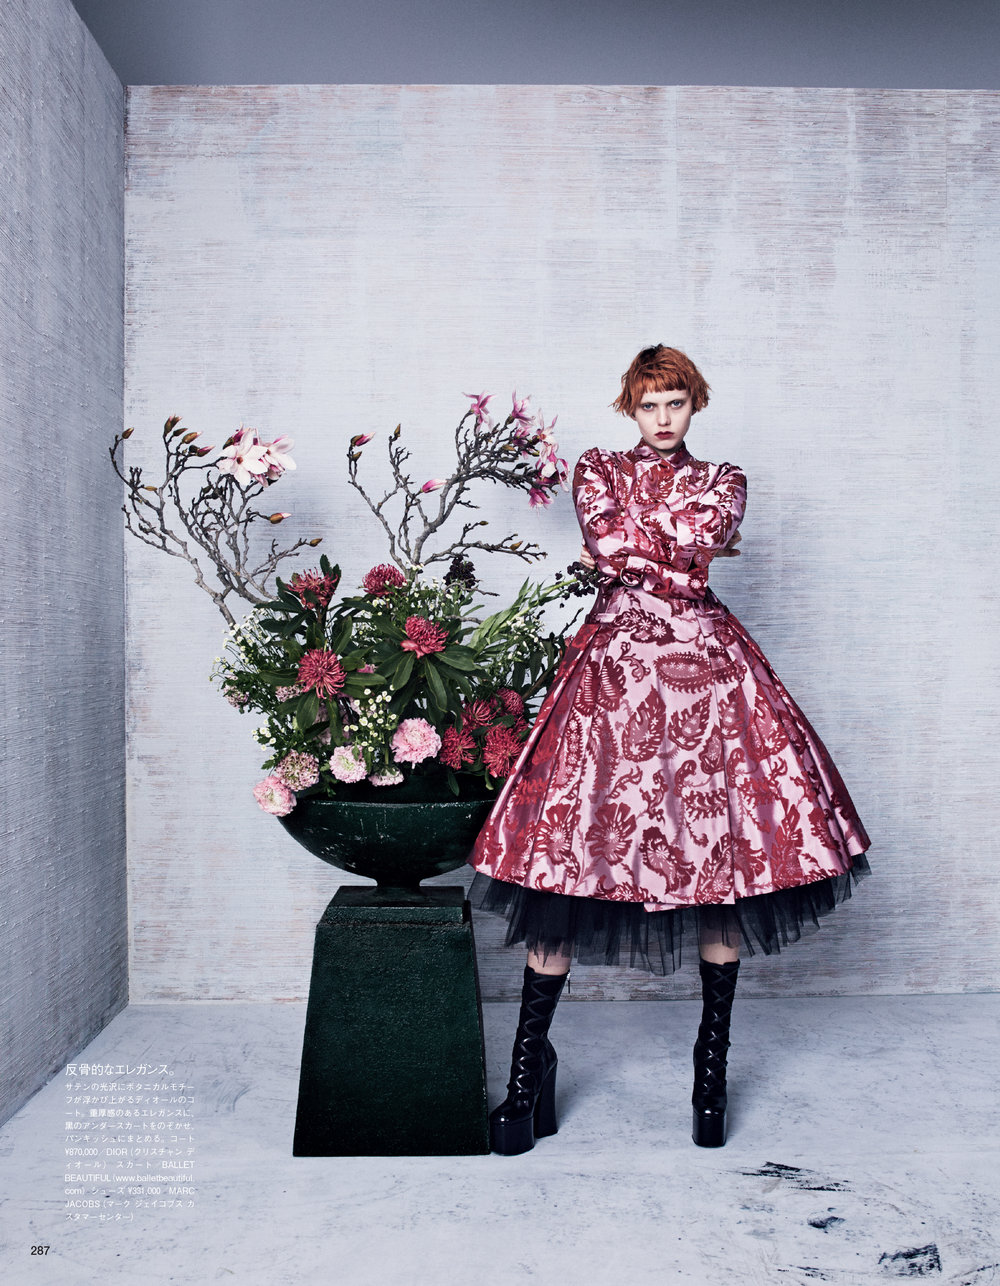 Giovanna-Battaglia_Flowers-of-Romance_Vogue-Japan_January-2017_Emma-Summerton_2.jpg